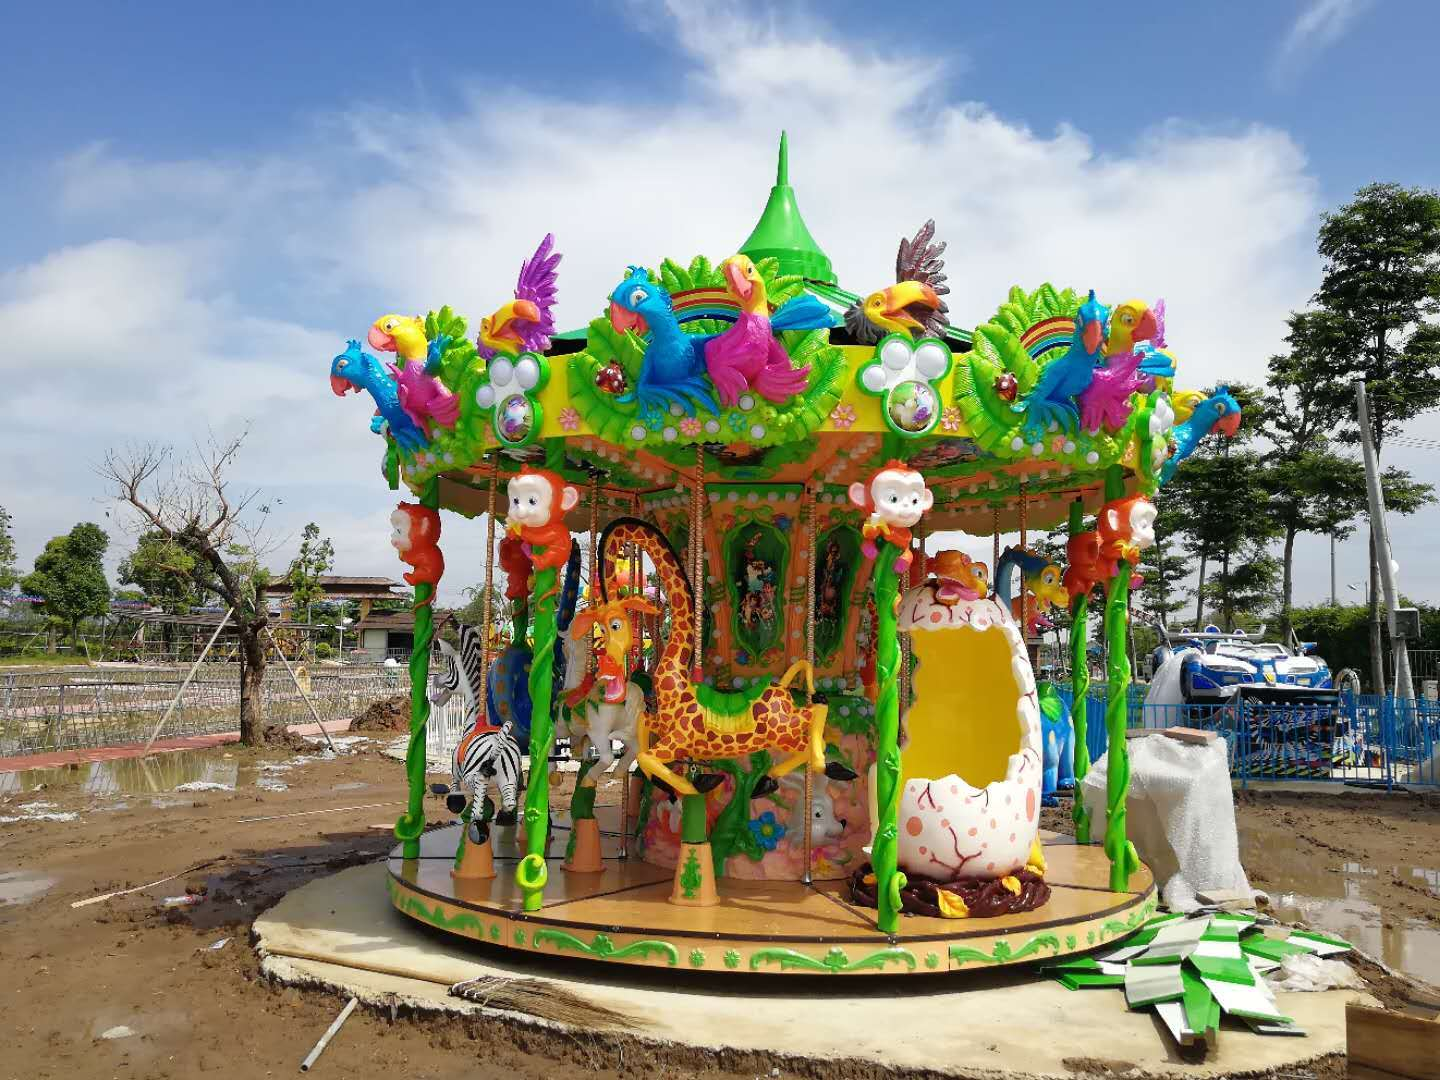 JS-CR1202 Jungle Carousel I